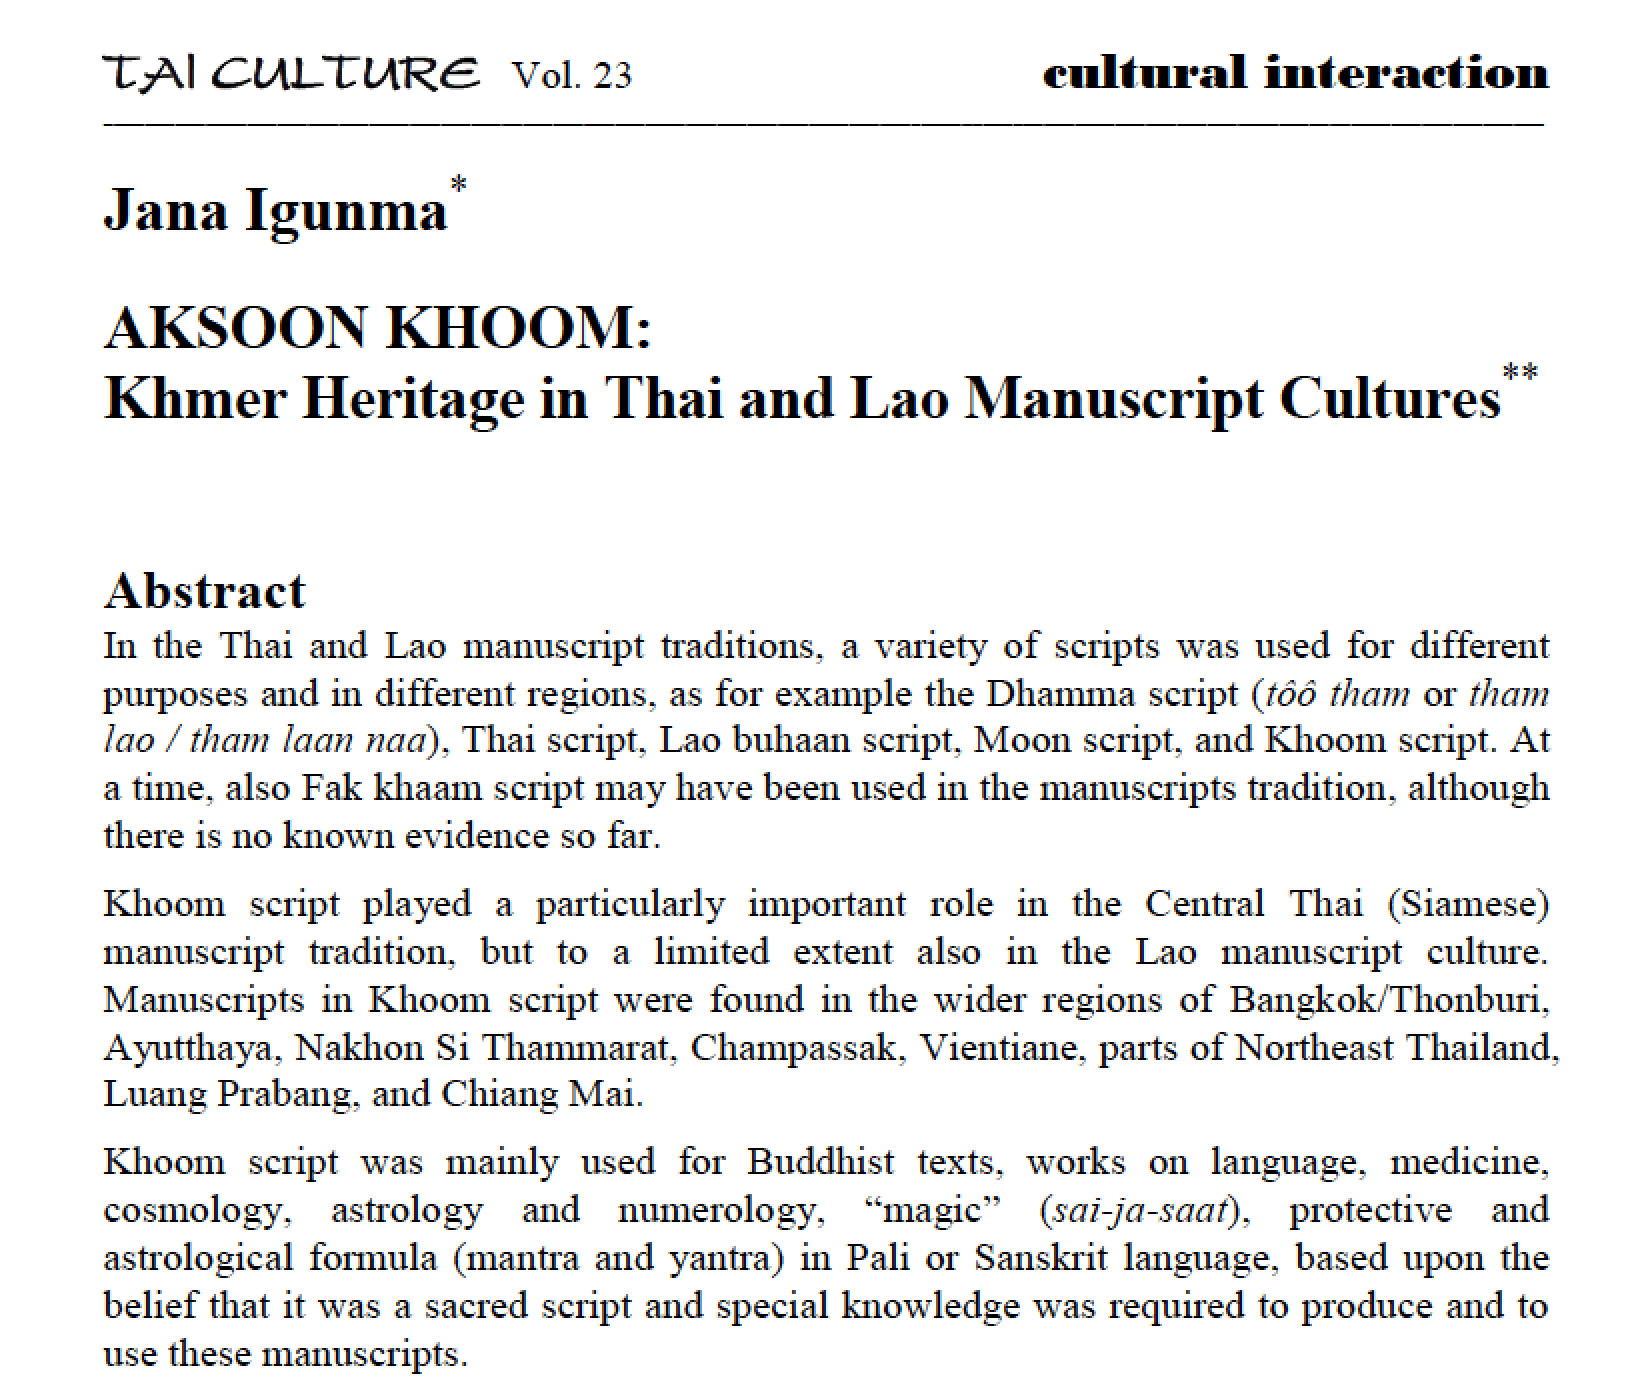 Khmer Heritage in Thai and Lao Manuscript